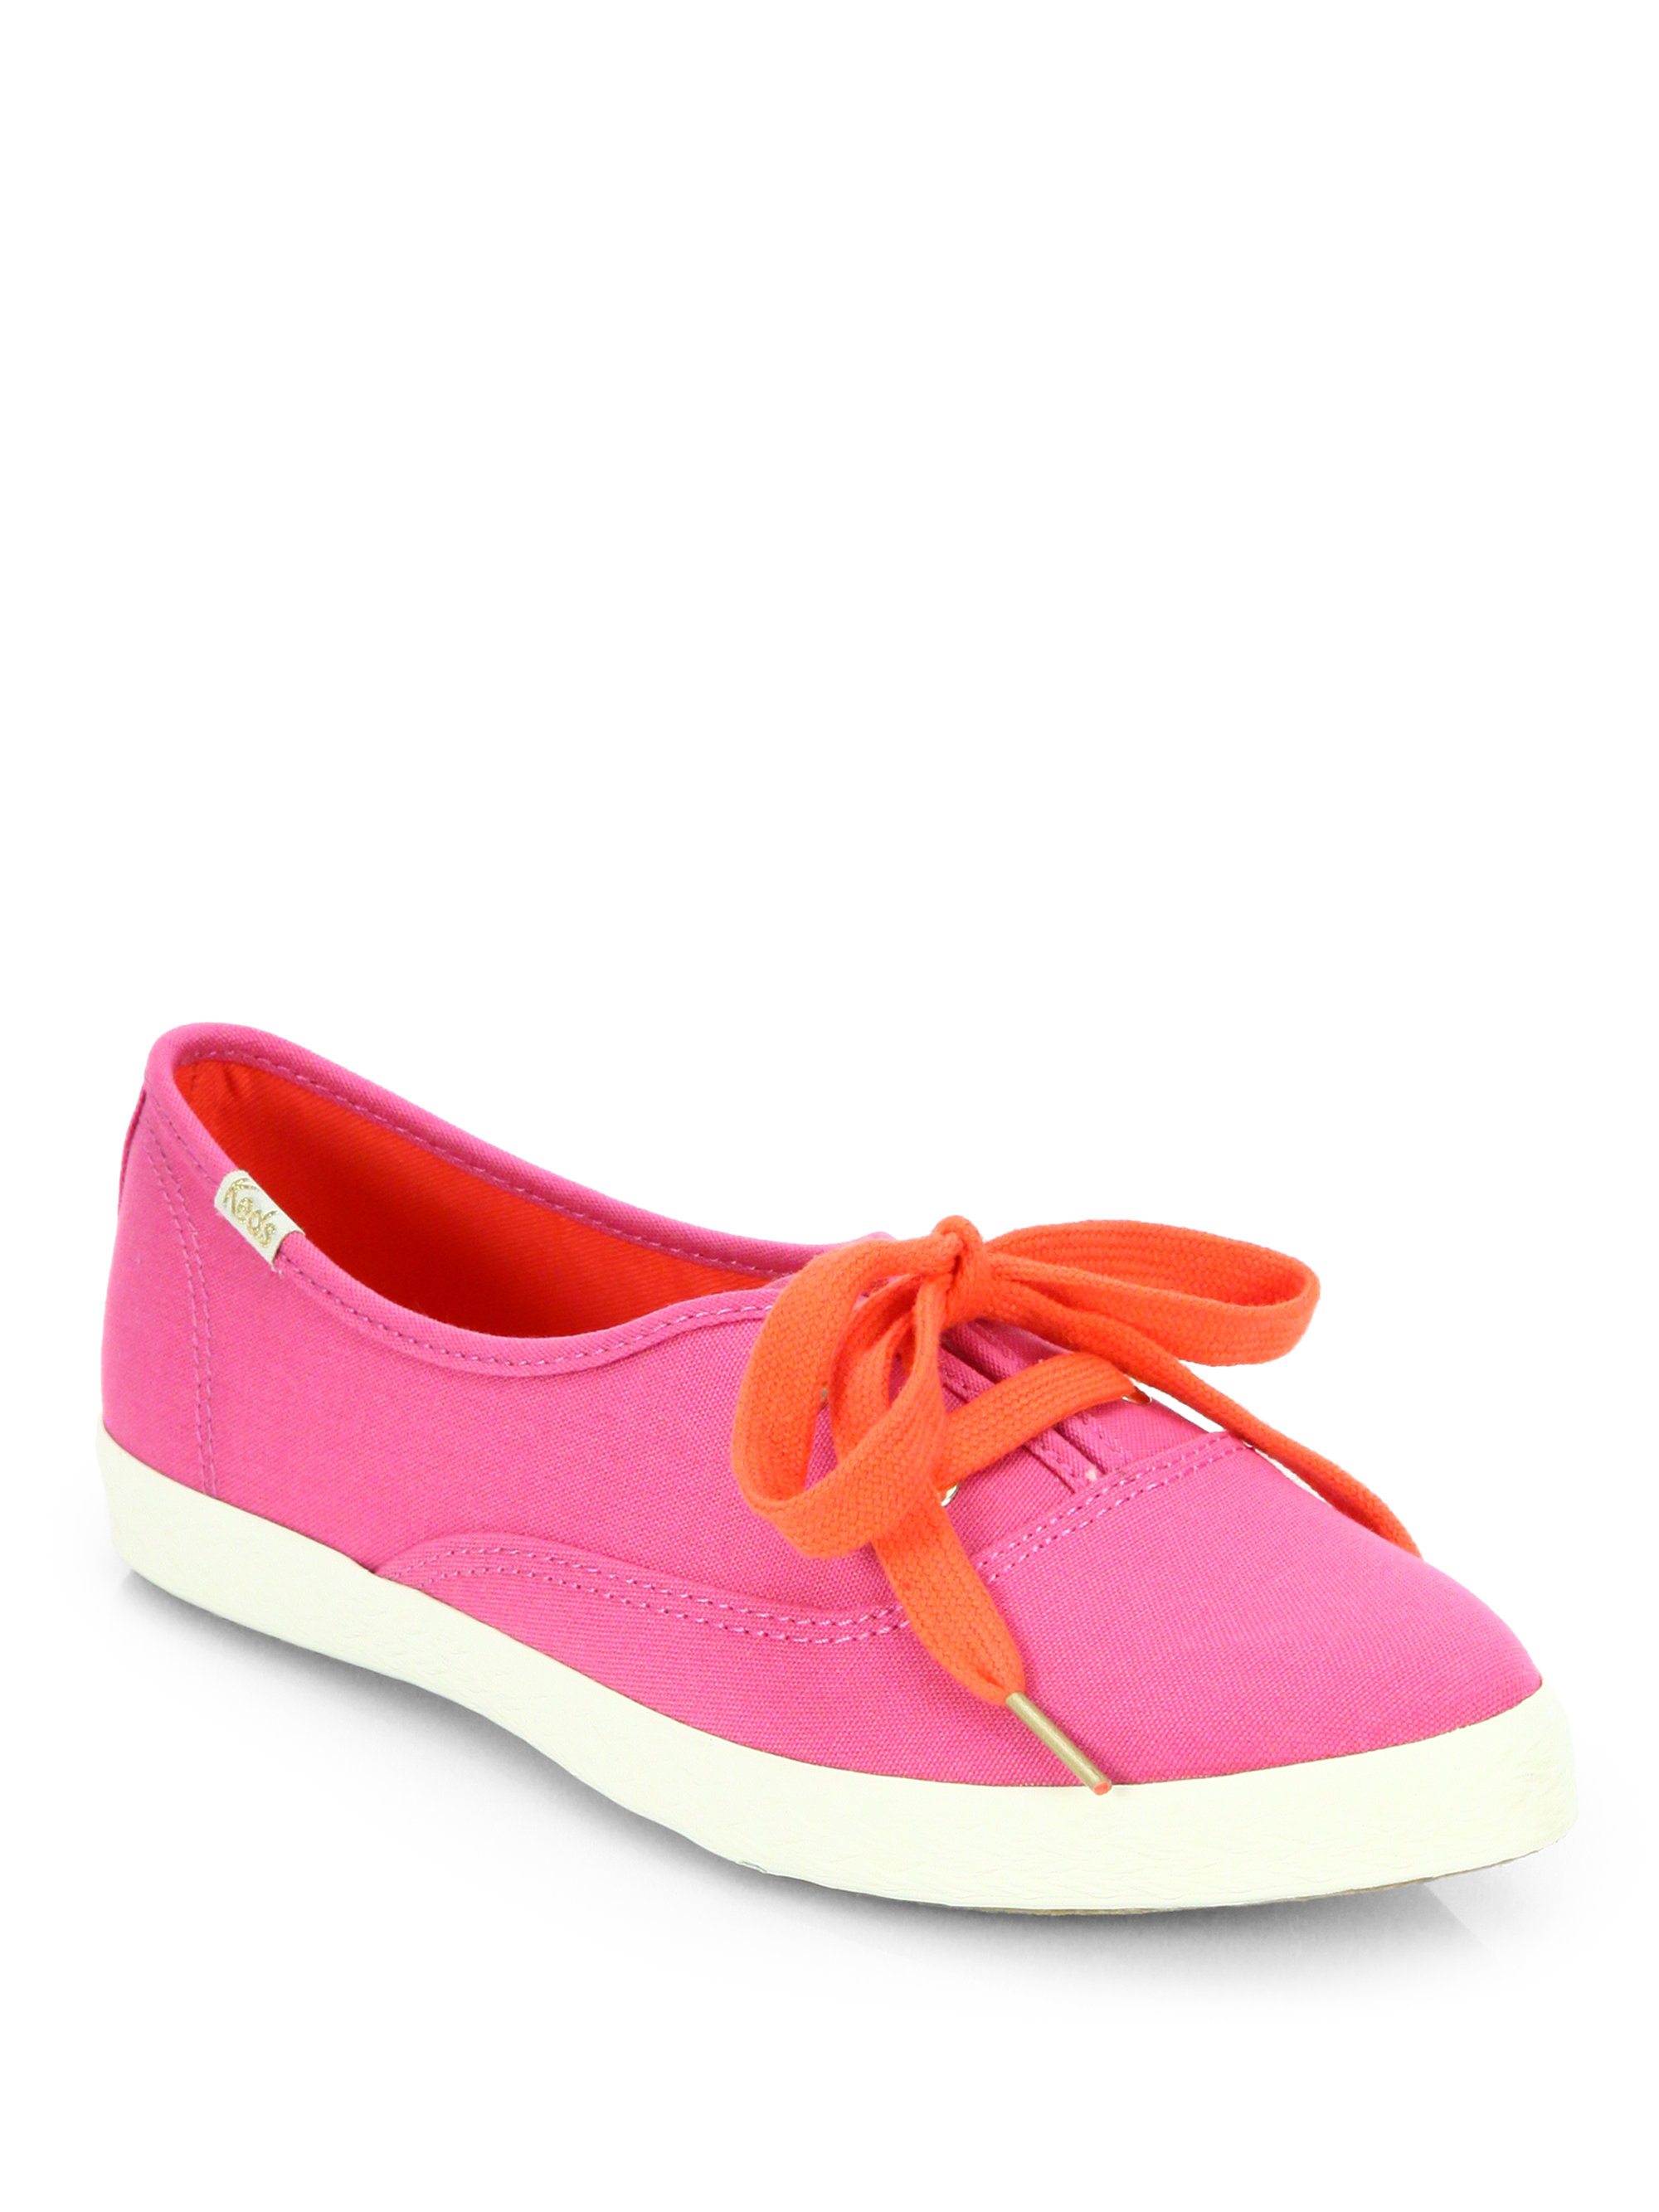 Kate Spade Pointer Canvas Keds Sneakers In Pink Lyst